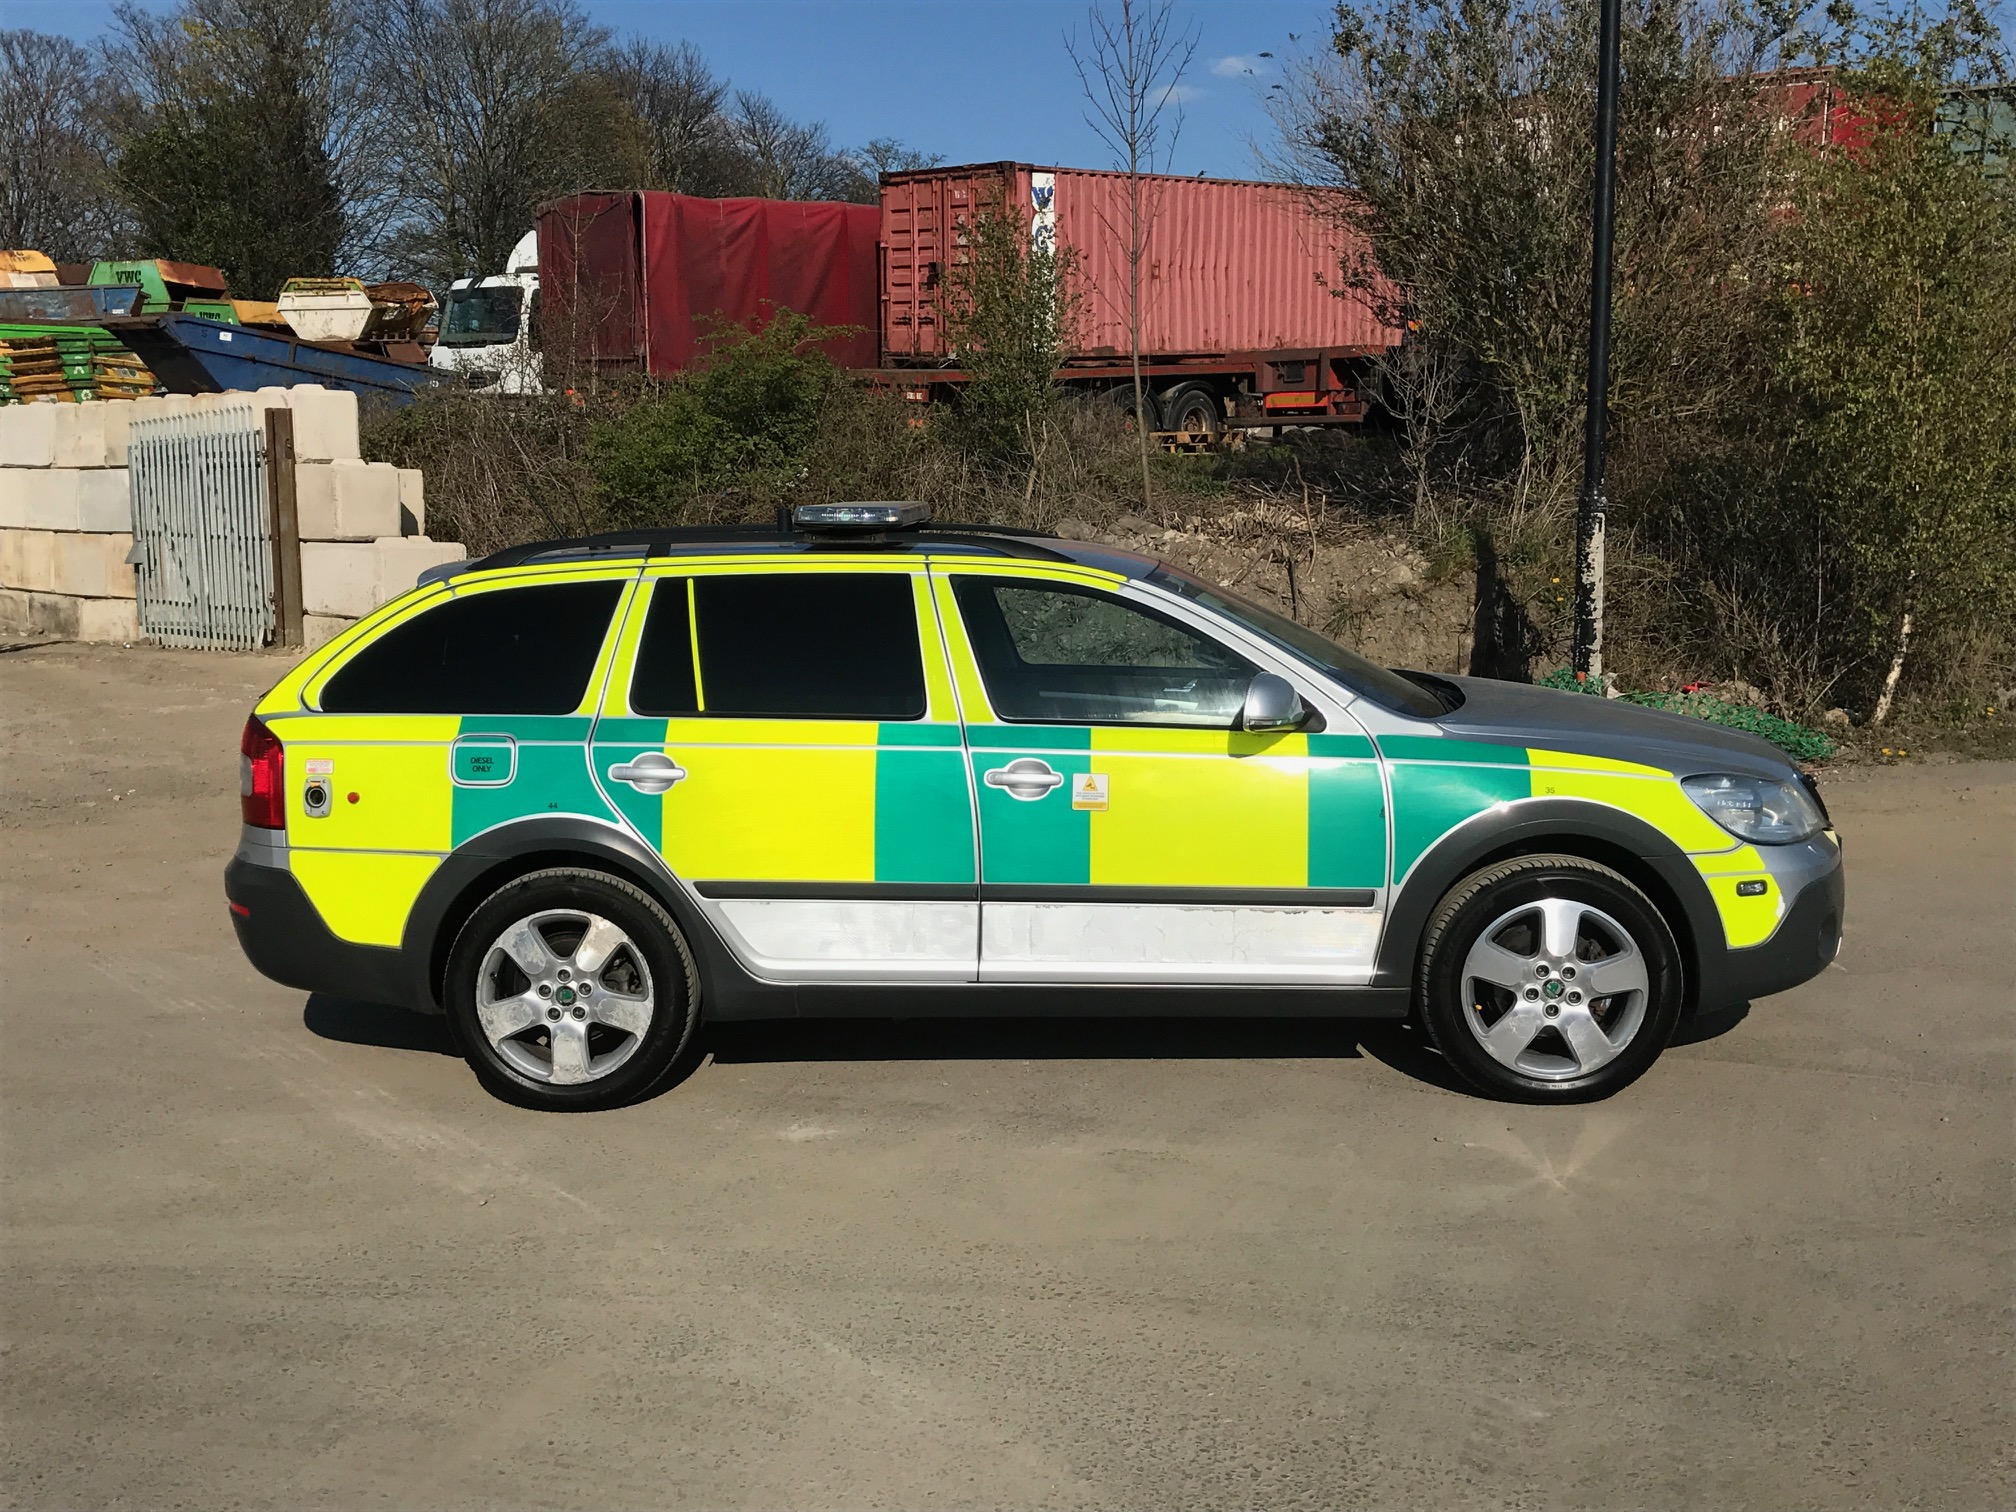 skoda octavia scout 4x4 ambulance trader. Black Bedroom Furniture Sets. Home Design Ideas